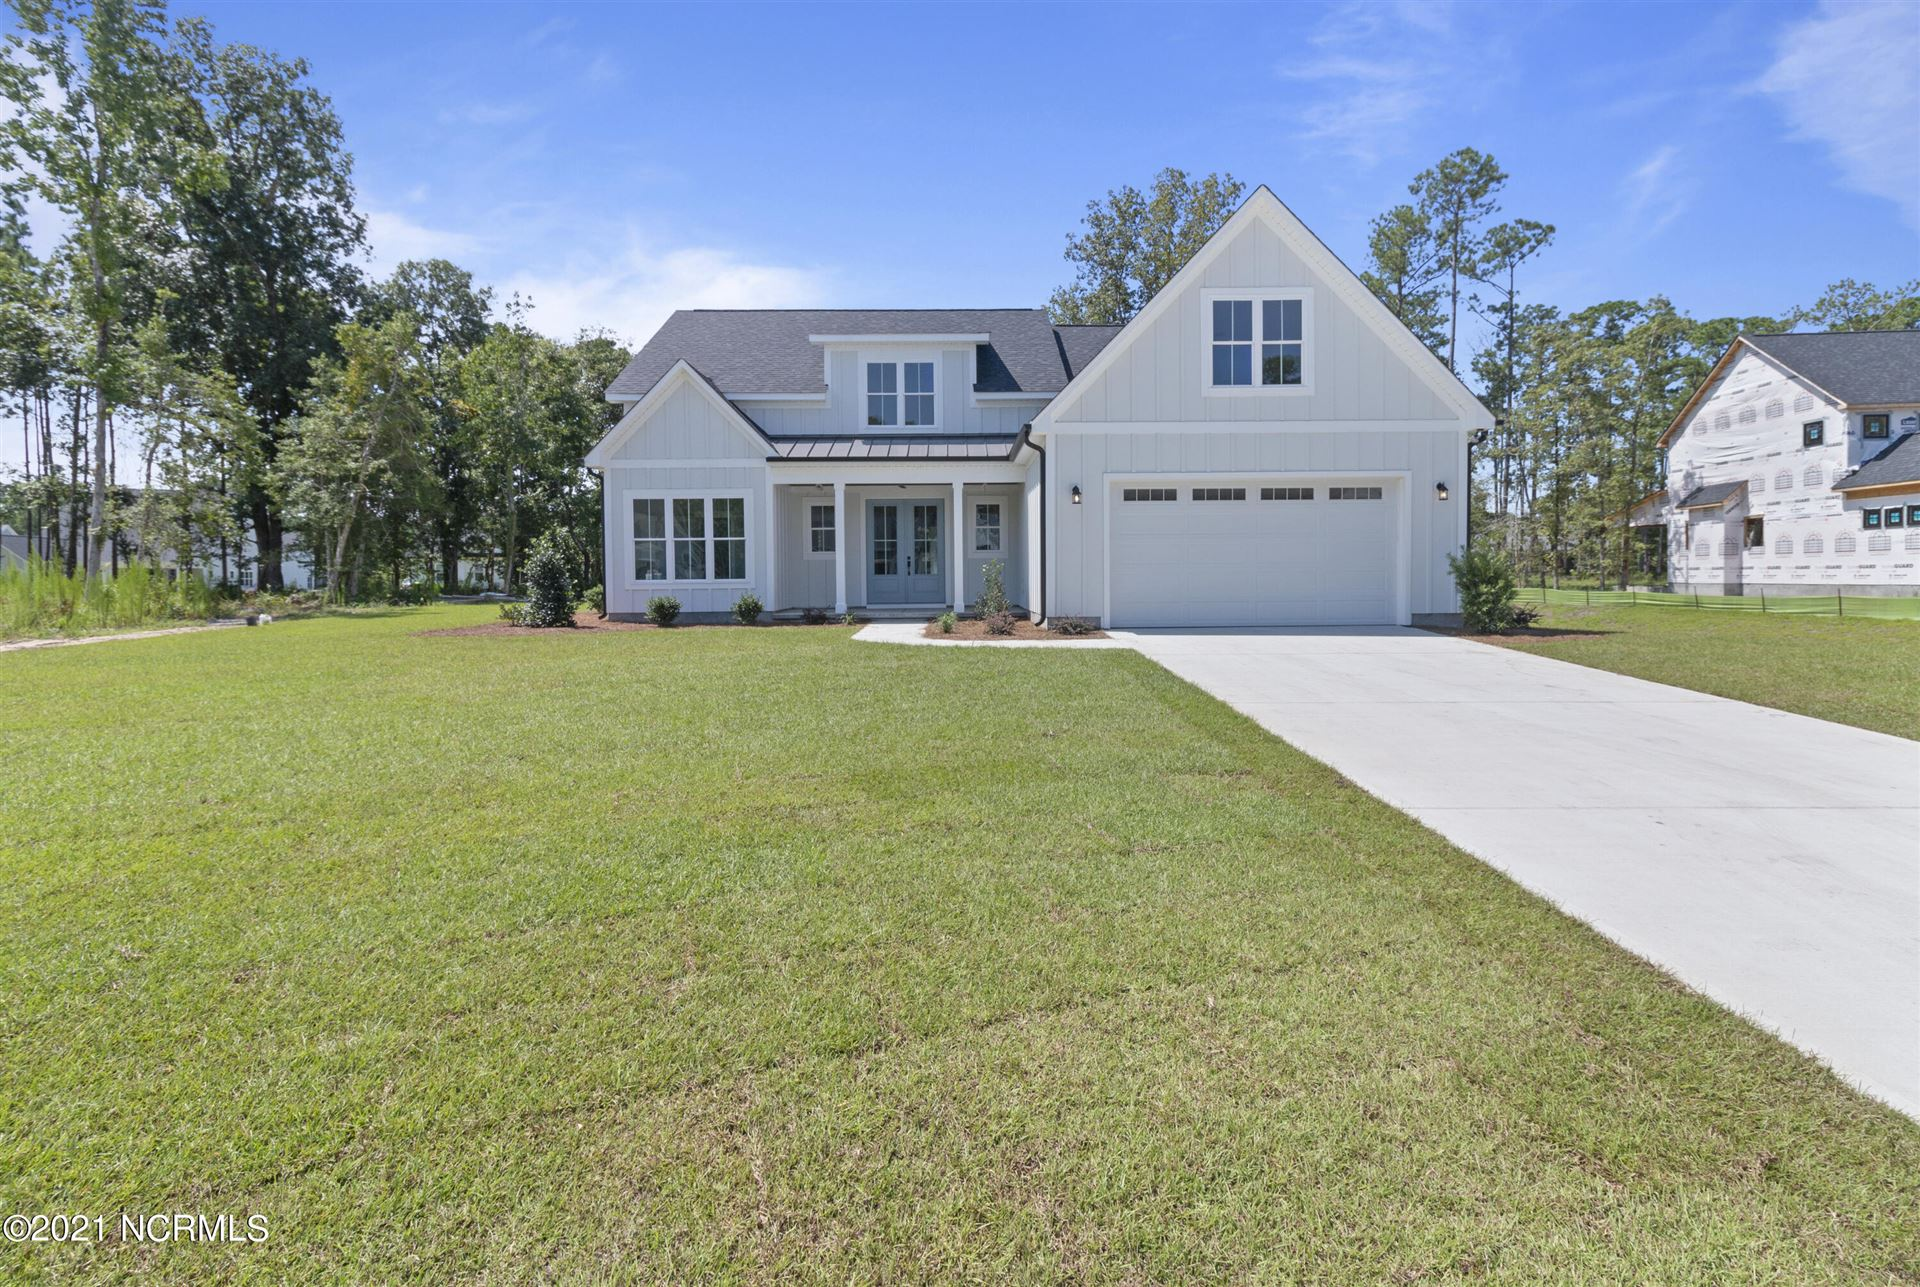 L66 Berkshire Lane, Hampstead, NC 28443 - MLS#: 100253517